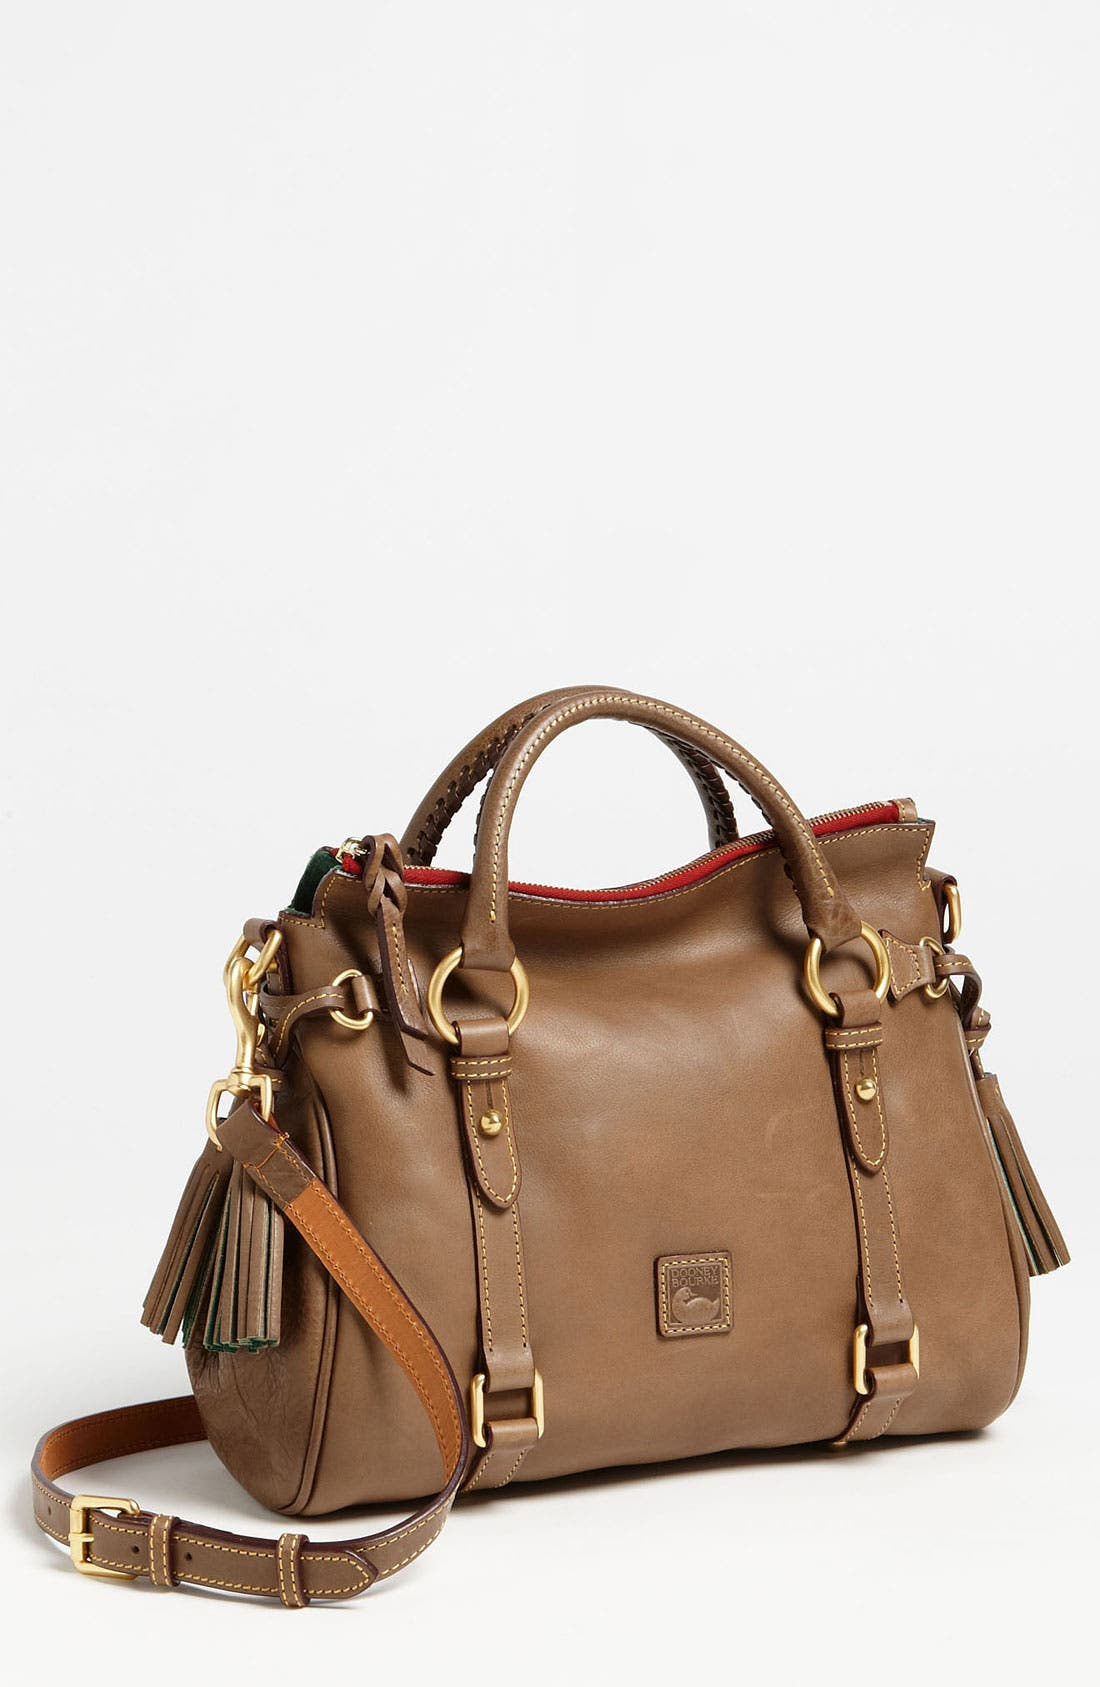 Alternate Image 1 Selected - Dooney & Bourke 'Florentine - Small' Leather Crossbody Satchel